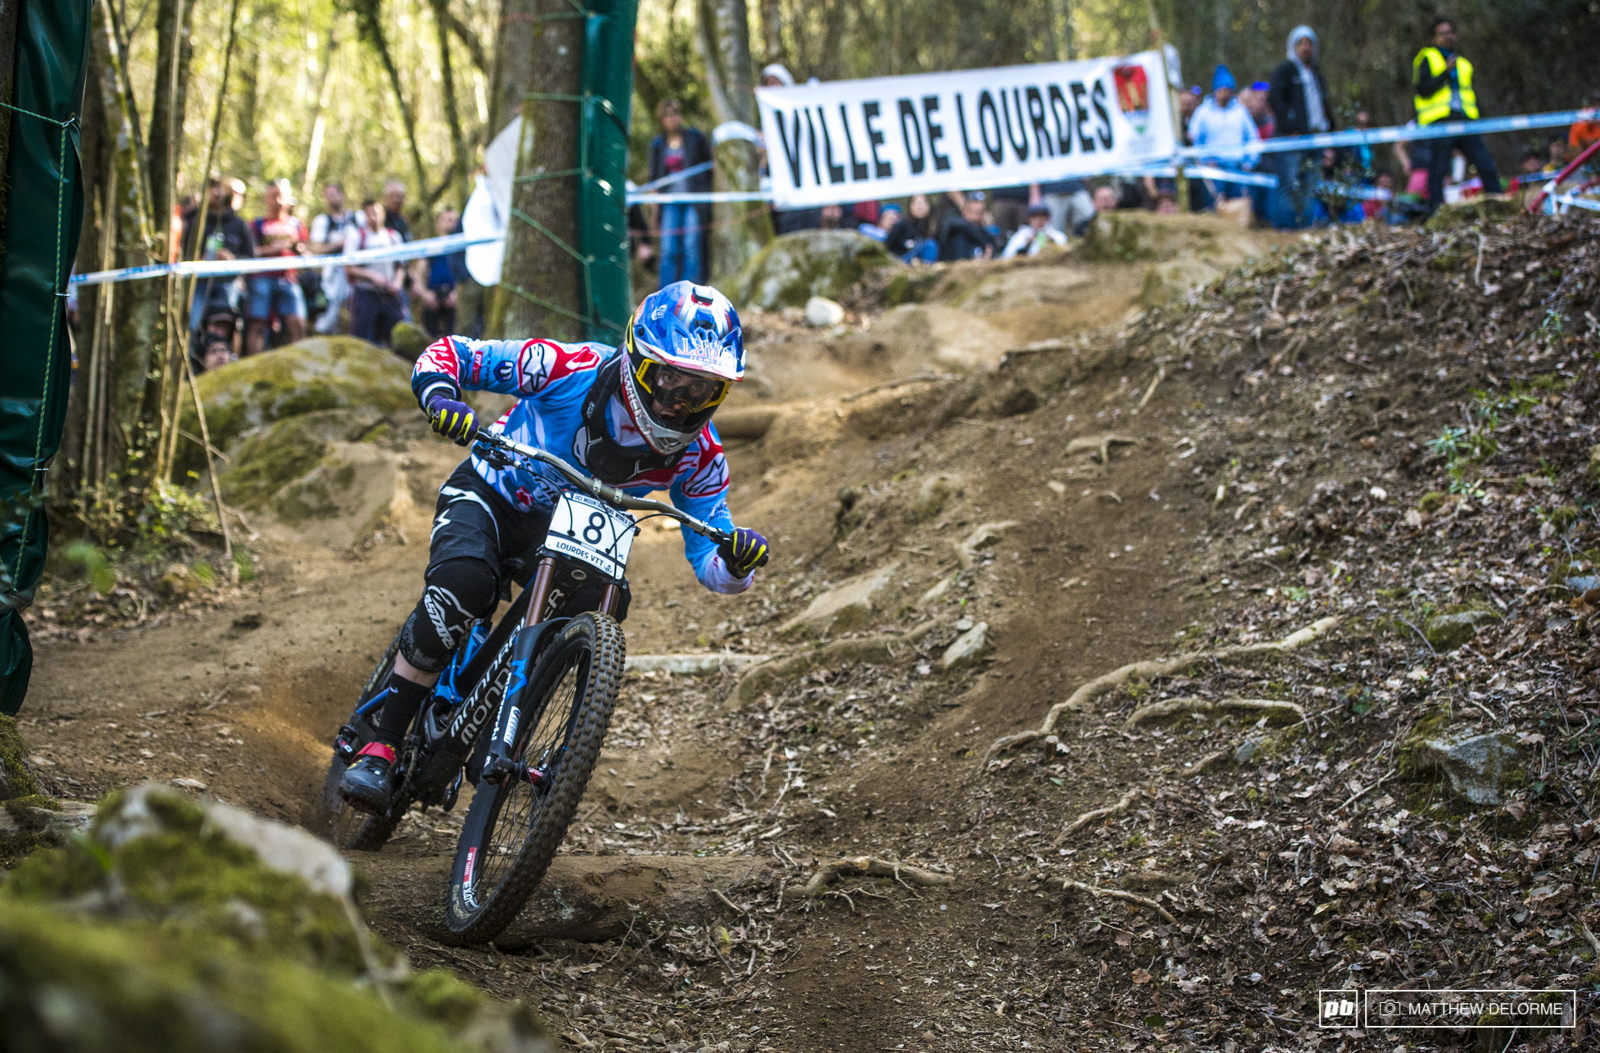 This track clearly suited Danny Hart s riding style. Danny rode to a solid fourth place. It s been a while since we ve seen Danny on the podium and it s good to see him back.